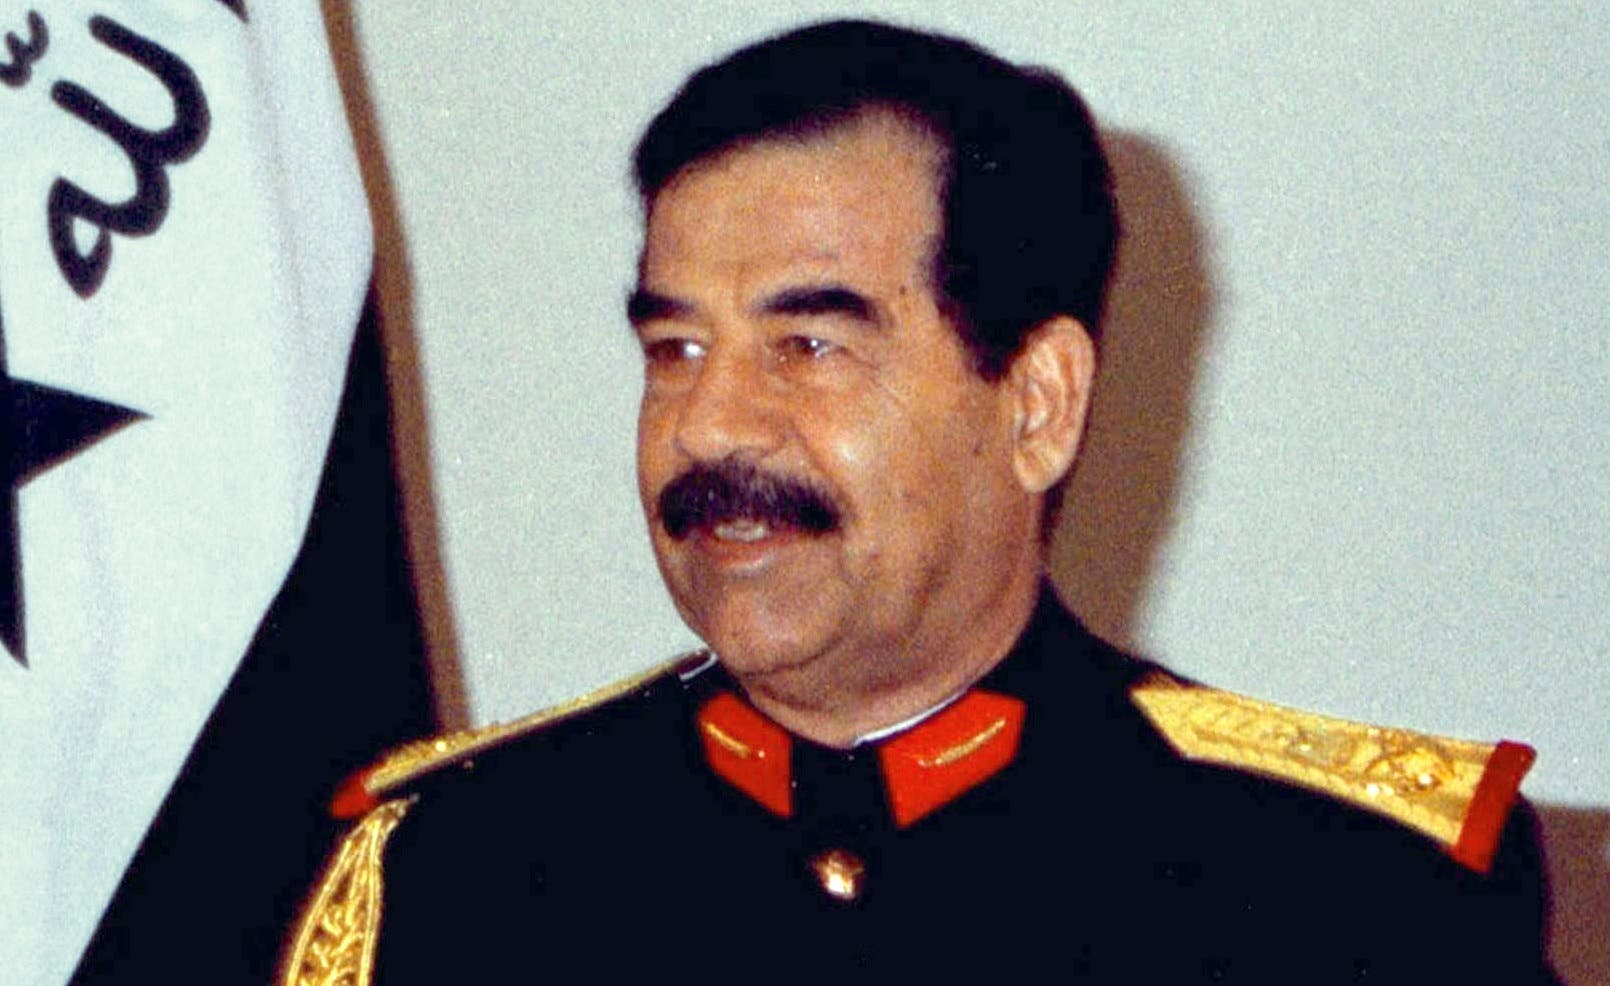 Iraqi President Saddam Hussein speaking during a 1997 address marking the 76th anniversary of the Iraqi forces. (File photo: Reuters)